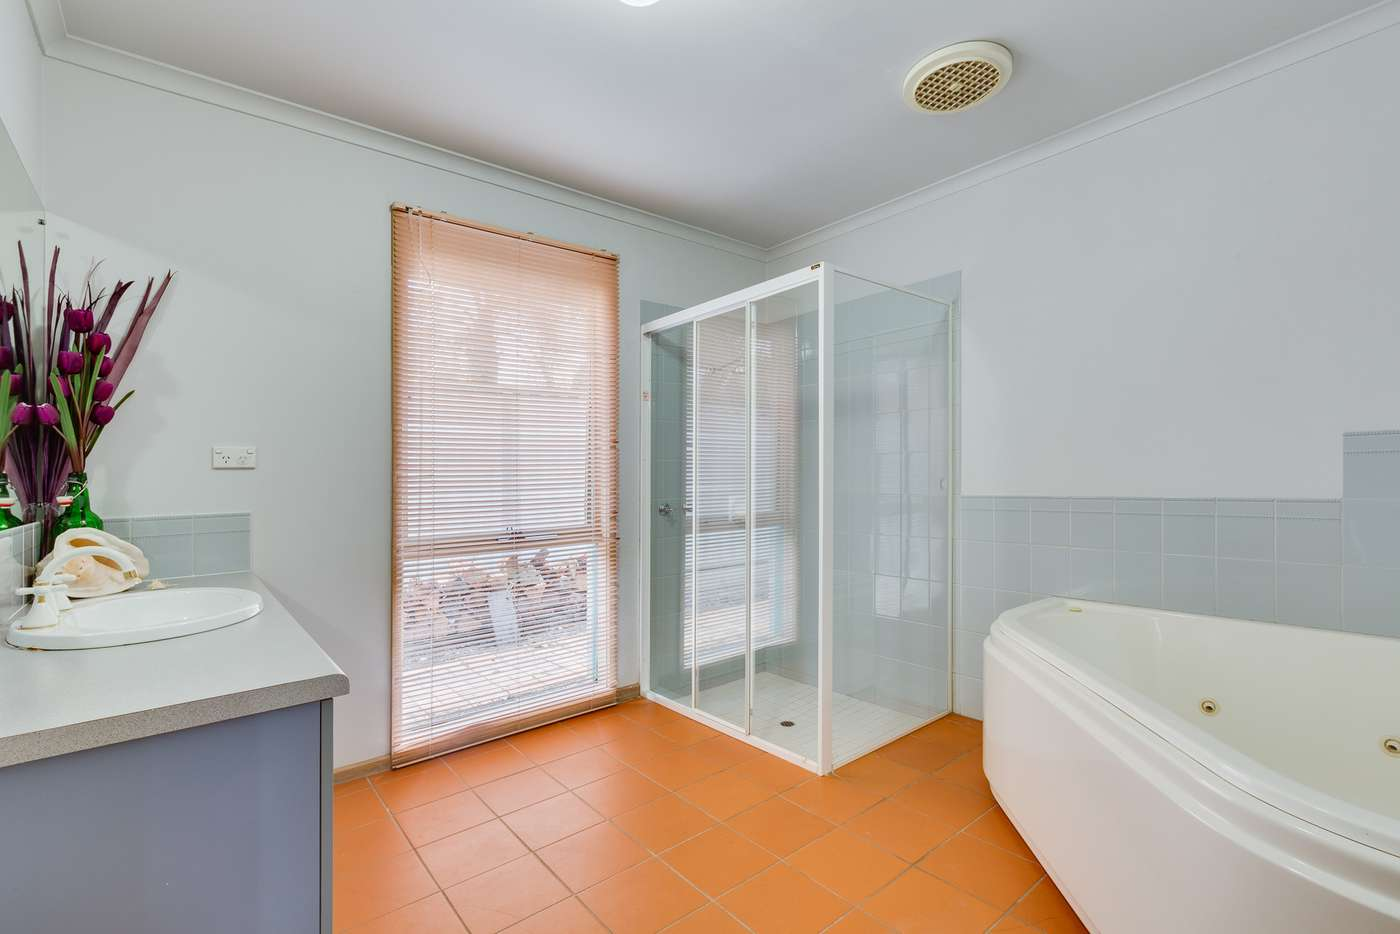 Fifth view of Homely house listing, 9 Lena Court, Hoppers Crossing VIC 3029